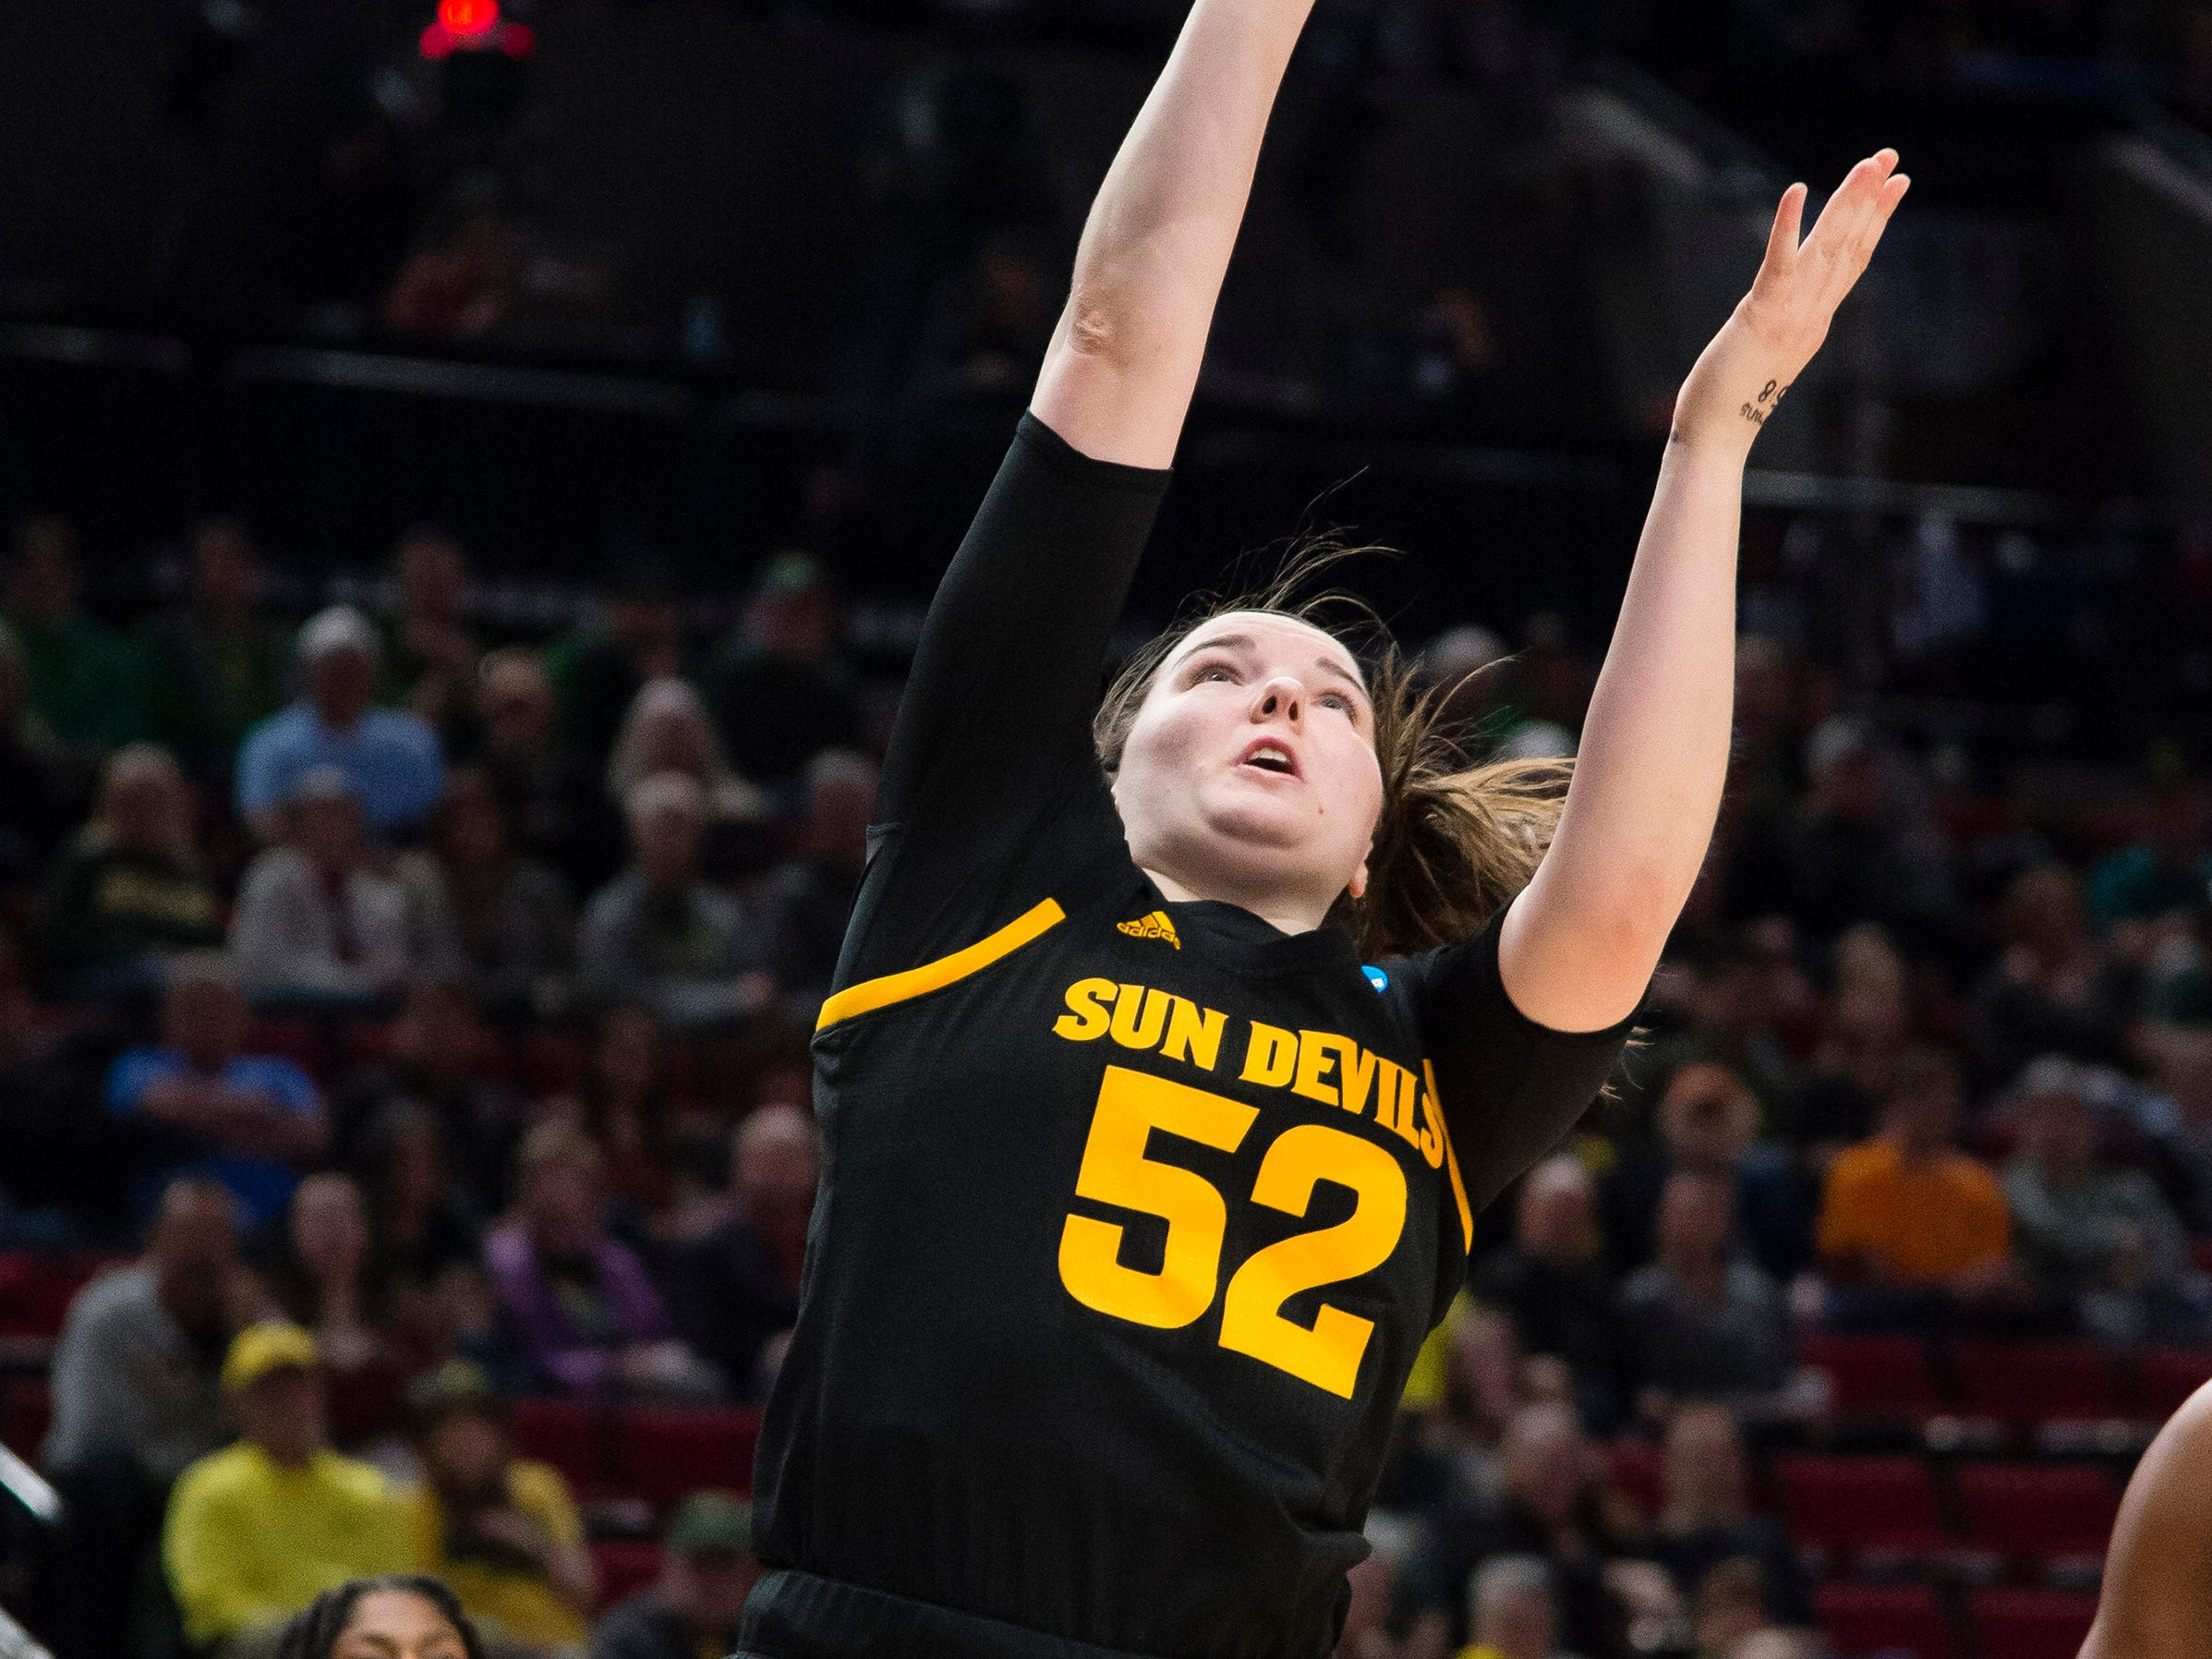 Mar 29, 2019; Portland, OR, USA; Arizona State Sun Devils forward Jamie Ruden (52) takes a shot during the first half against the Mississippi State Bulldogs in the semifinals of the Portland regional in the women's 2019 NCAA Tournament at Moda Center.